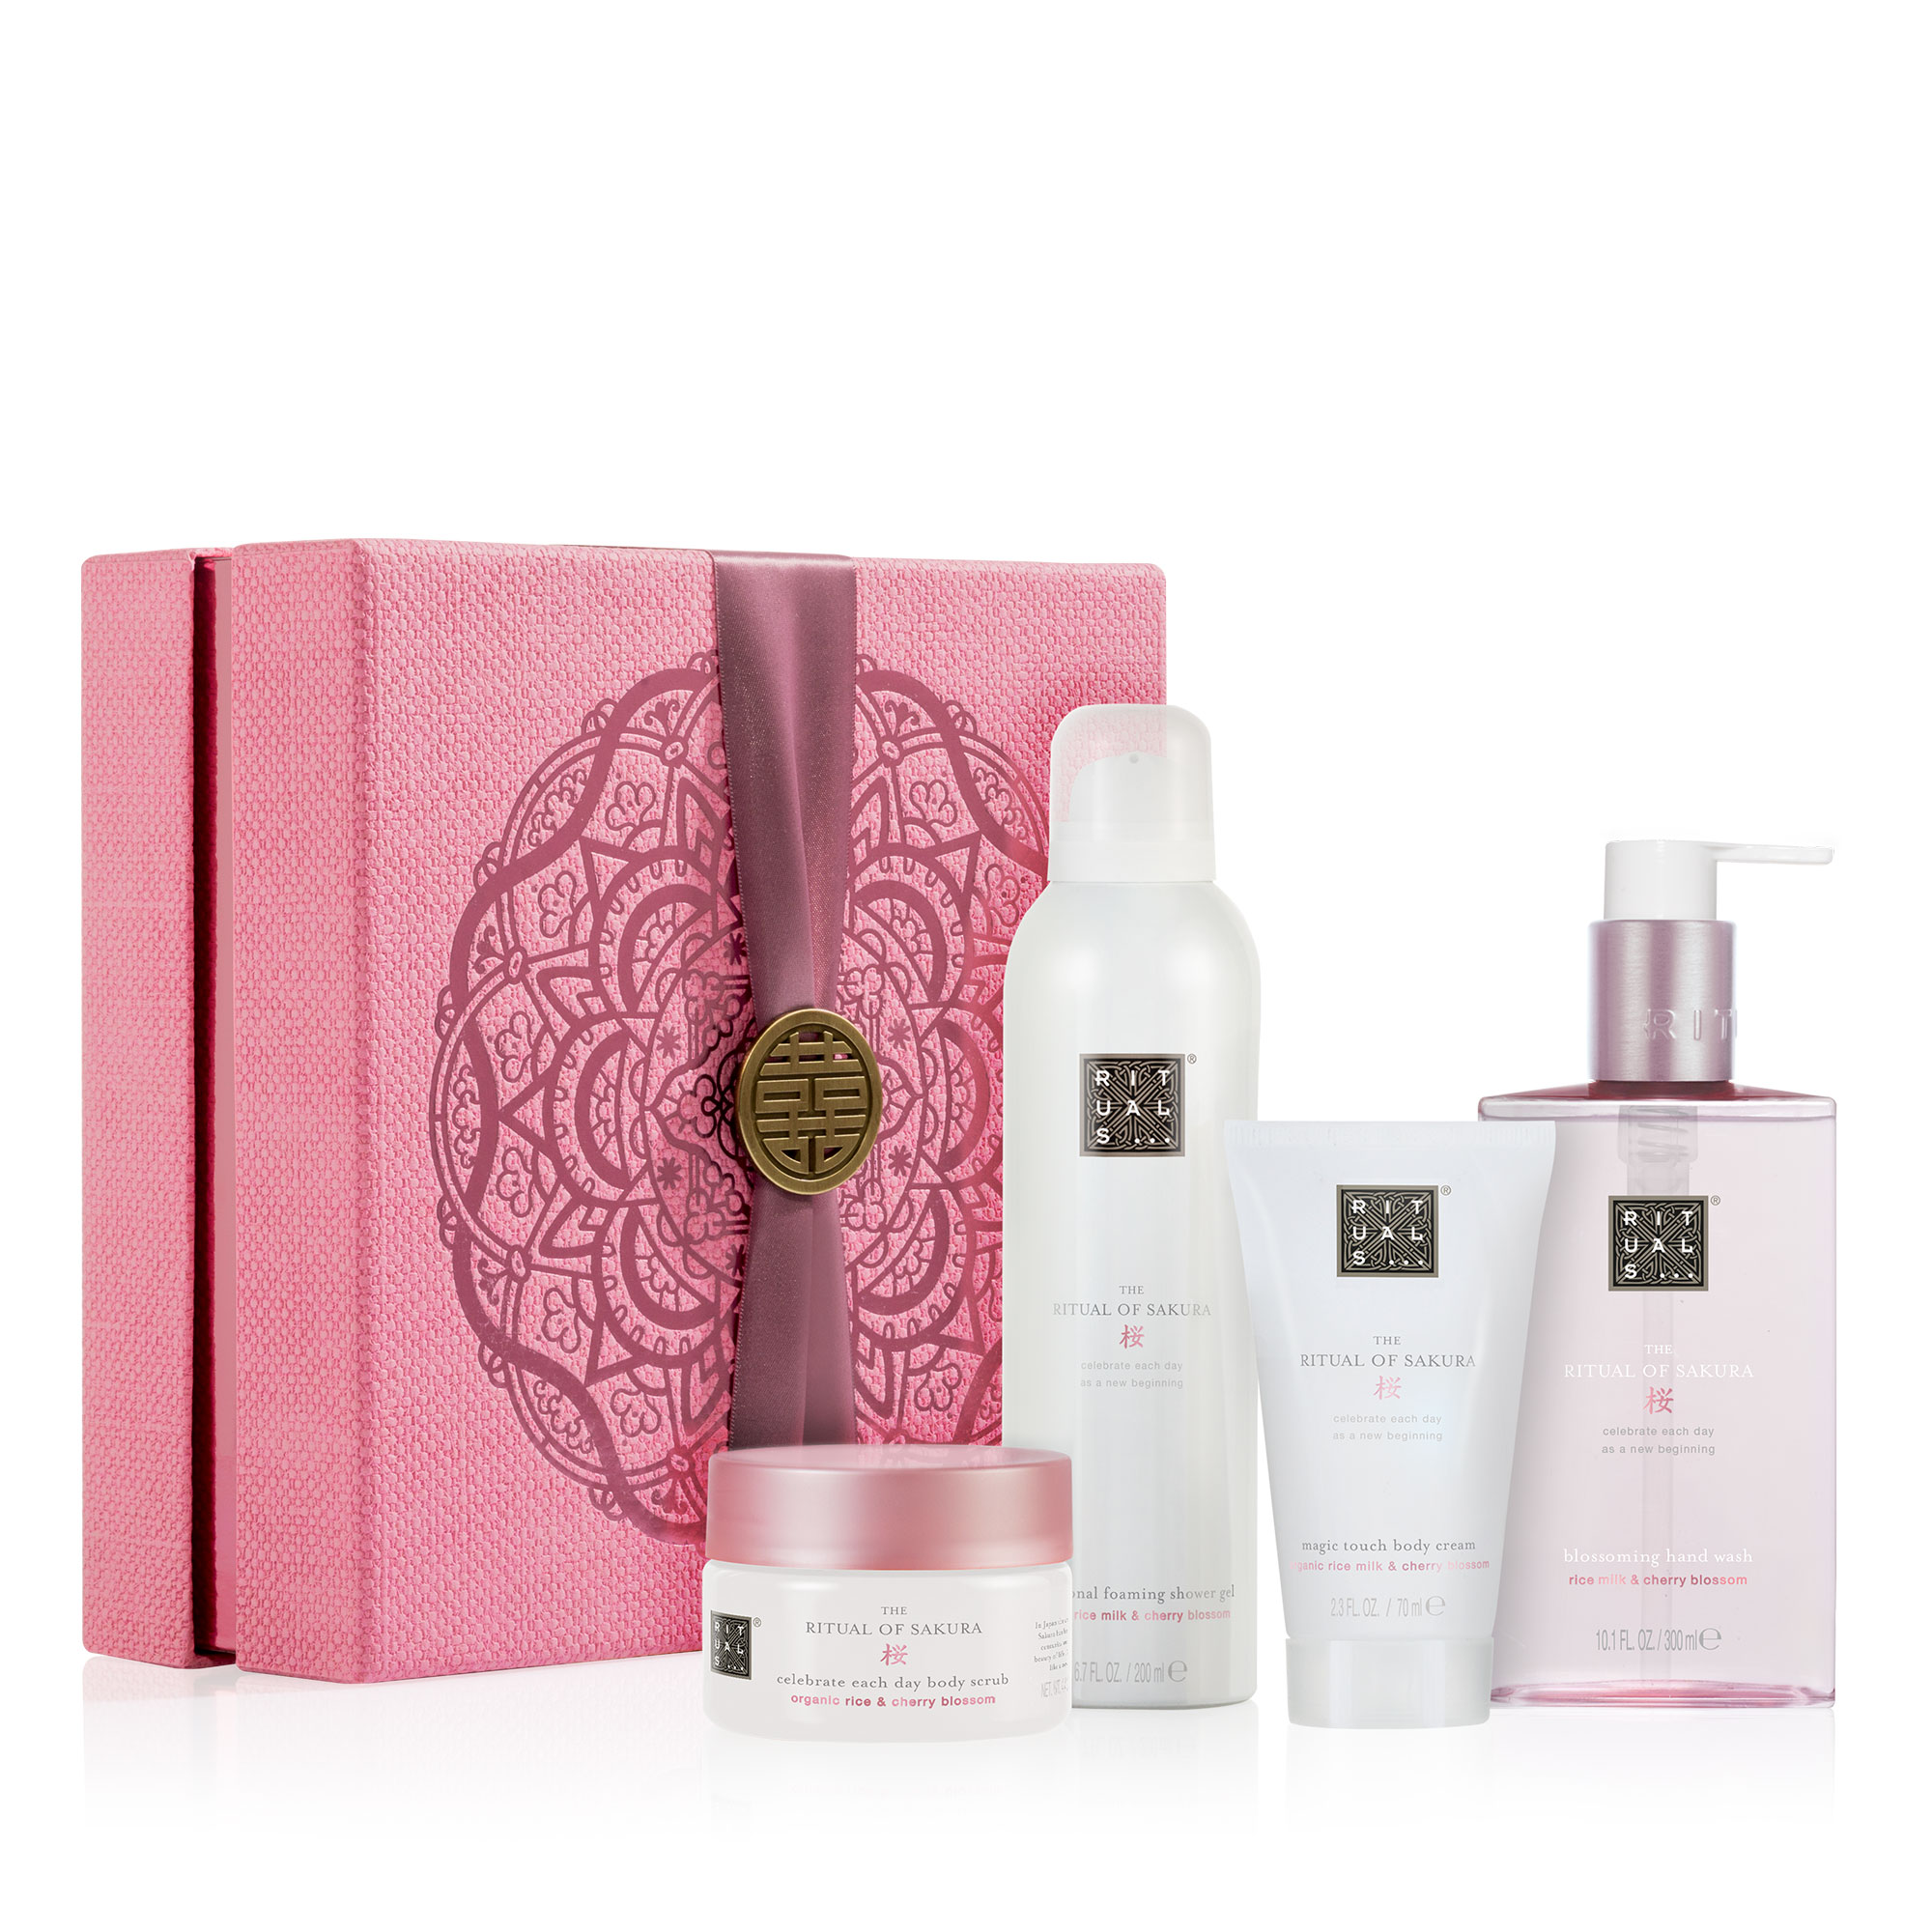 The Ritual Of Sakura - Renewing Ritual Medium Giftbox